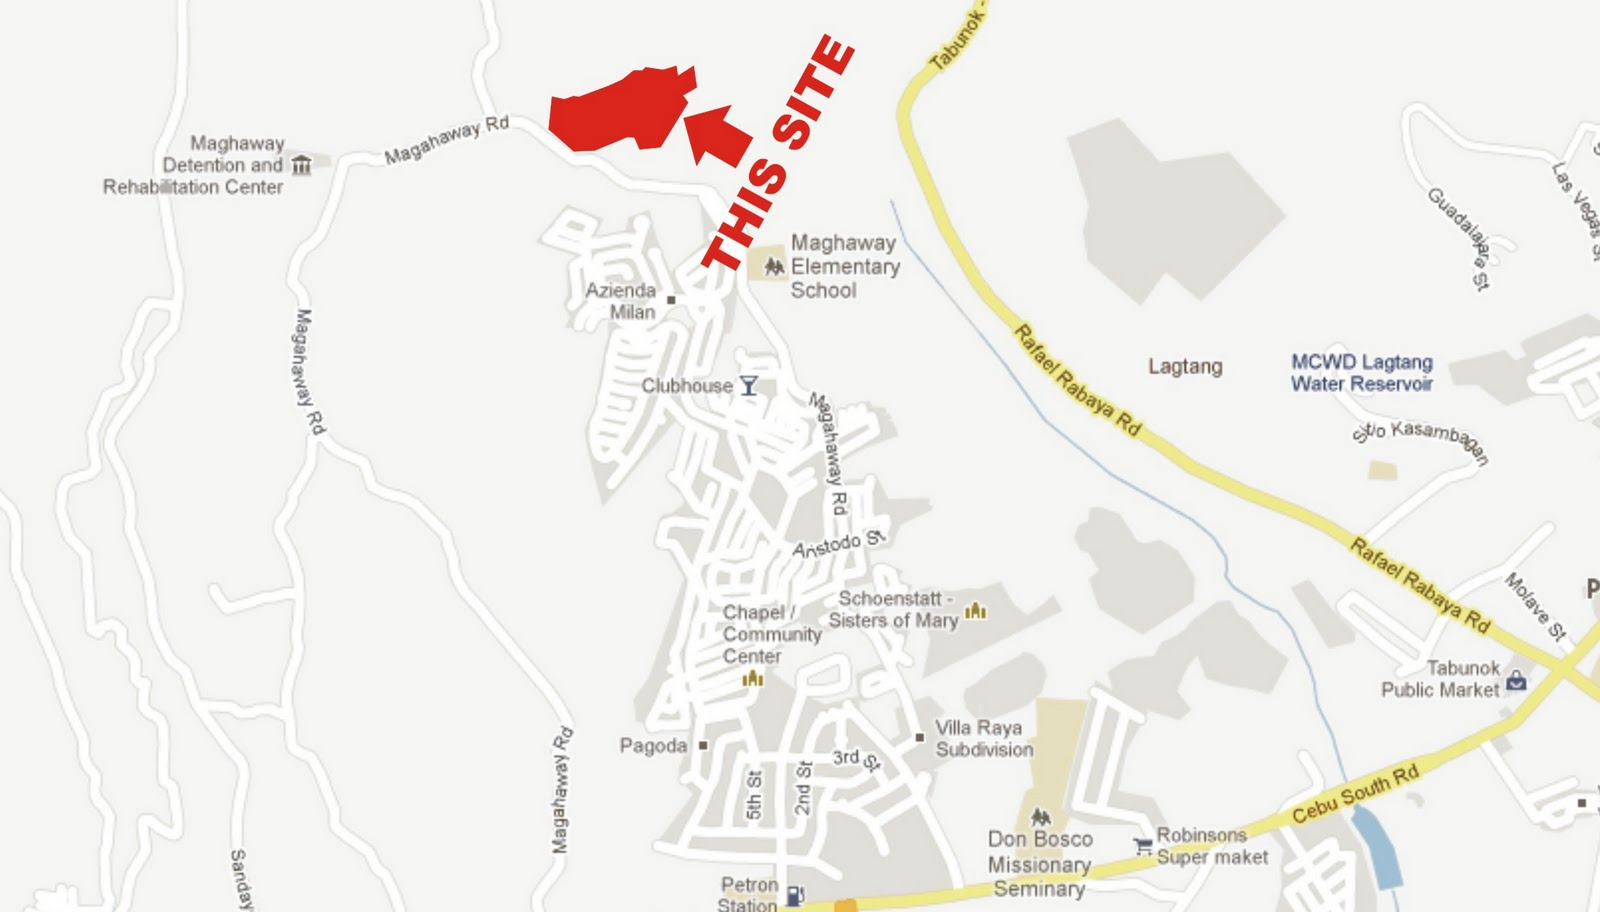 Nicebalay For Sale Cheap House And Lot Single Detached In San Jose Maria Village In Maghaway